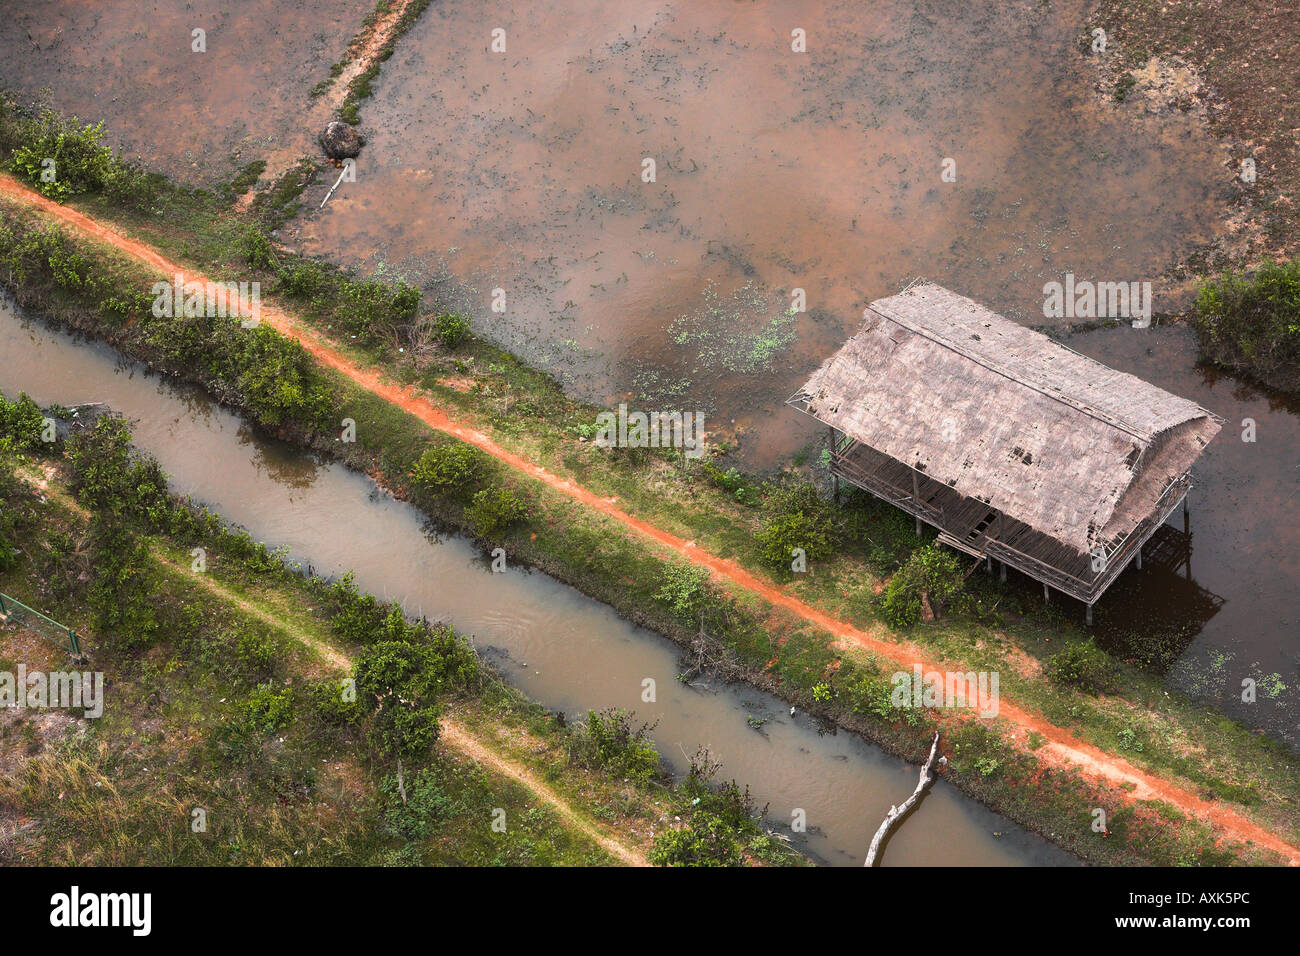 worn house in water by road flood river plants grass - Stock Image